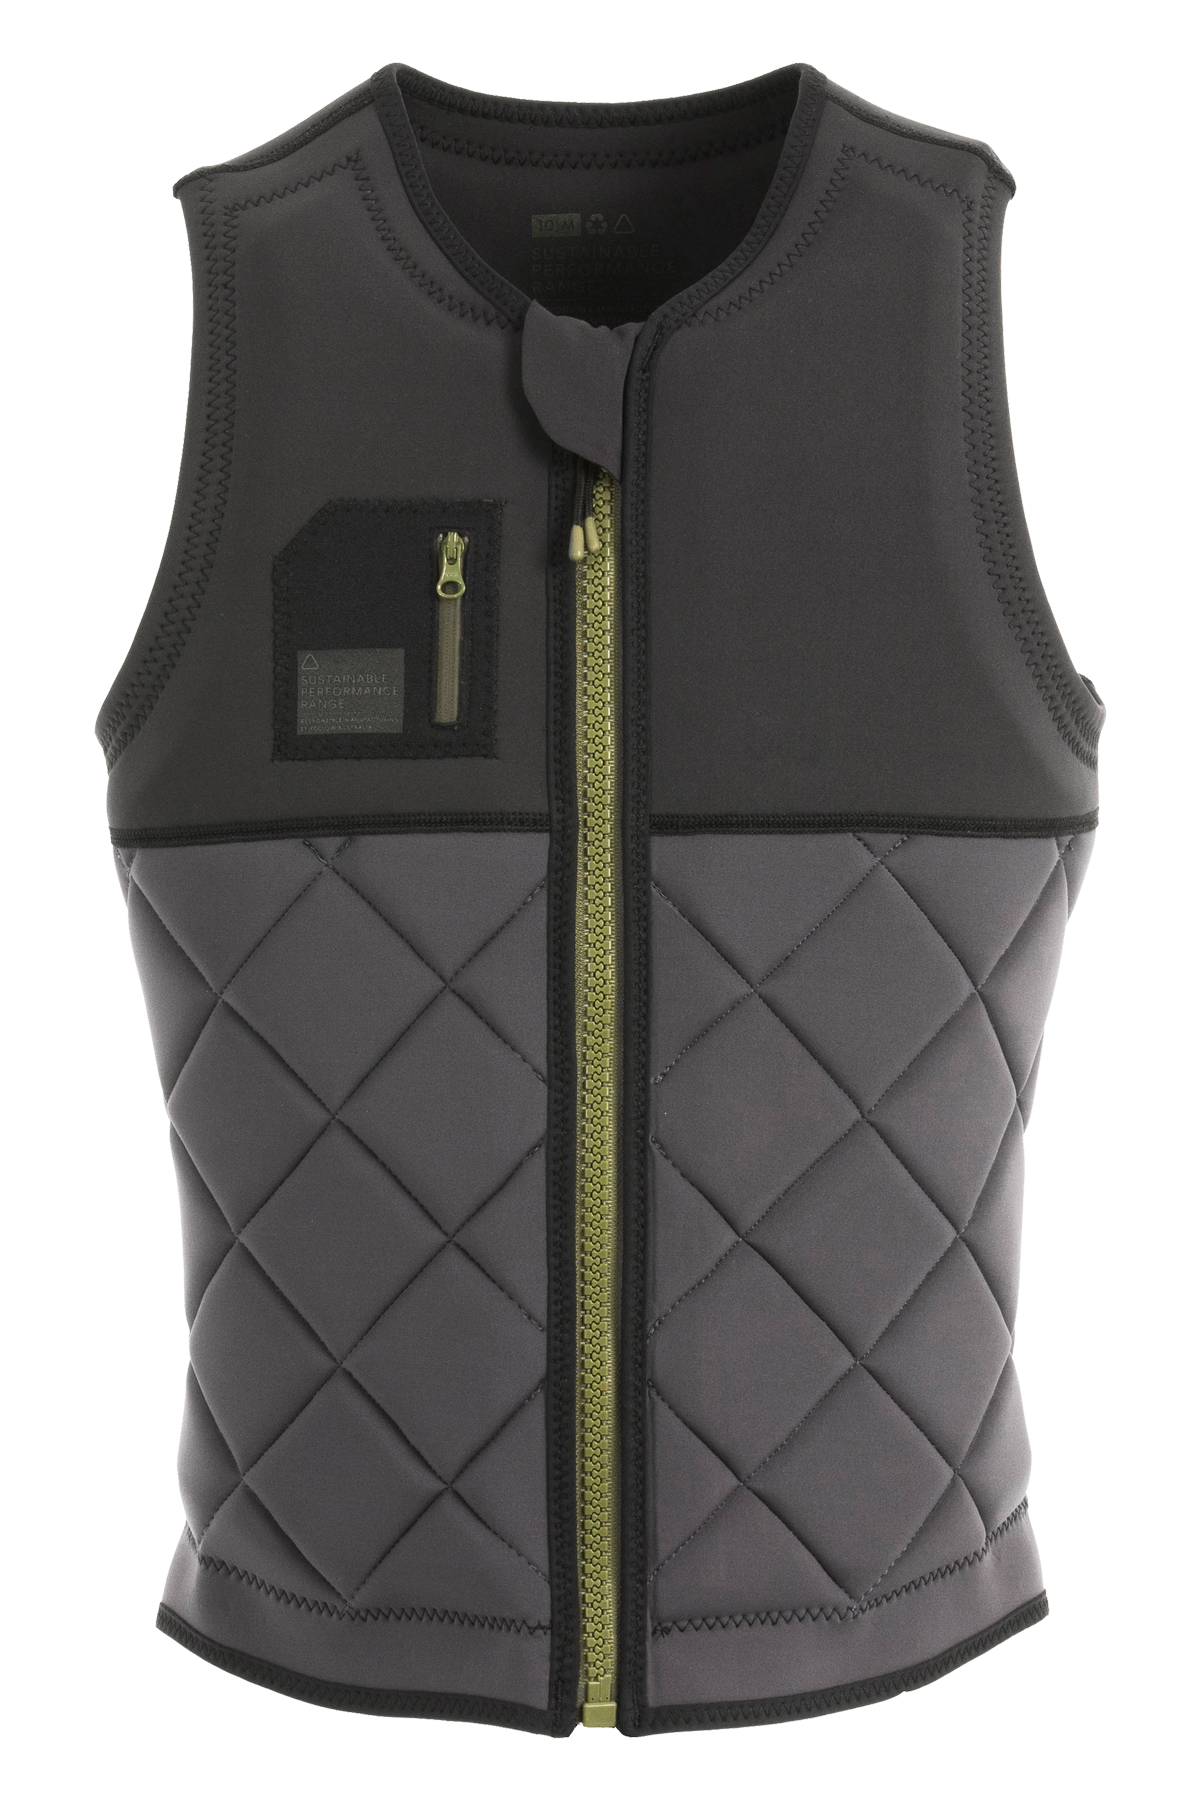 S.P.R. FREEMONT LADIES IMPACT VEST - BLACK FOLLOW 2019